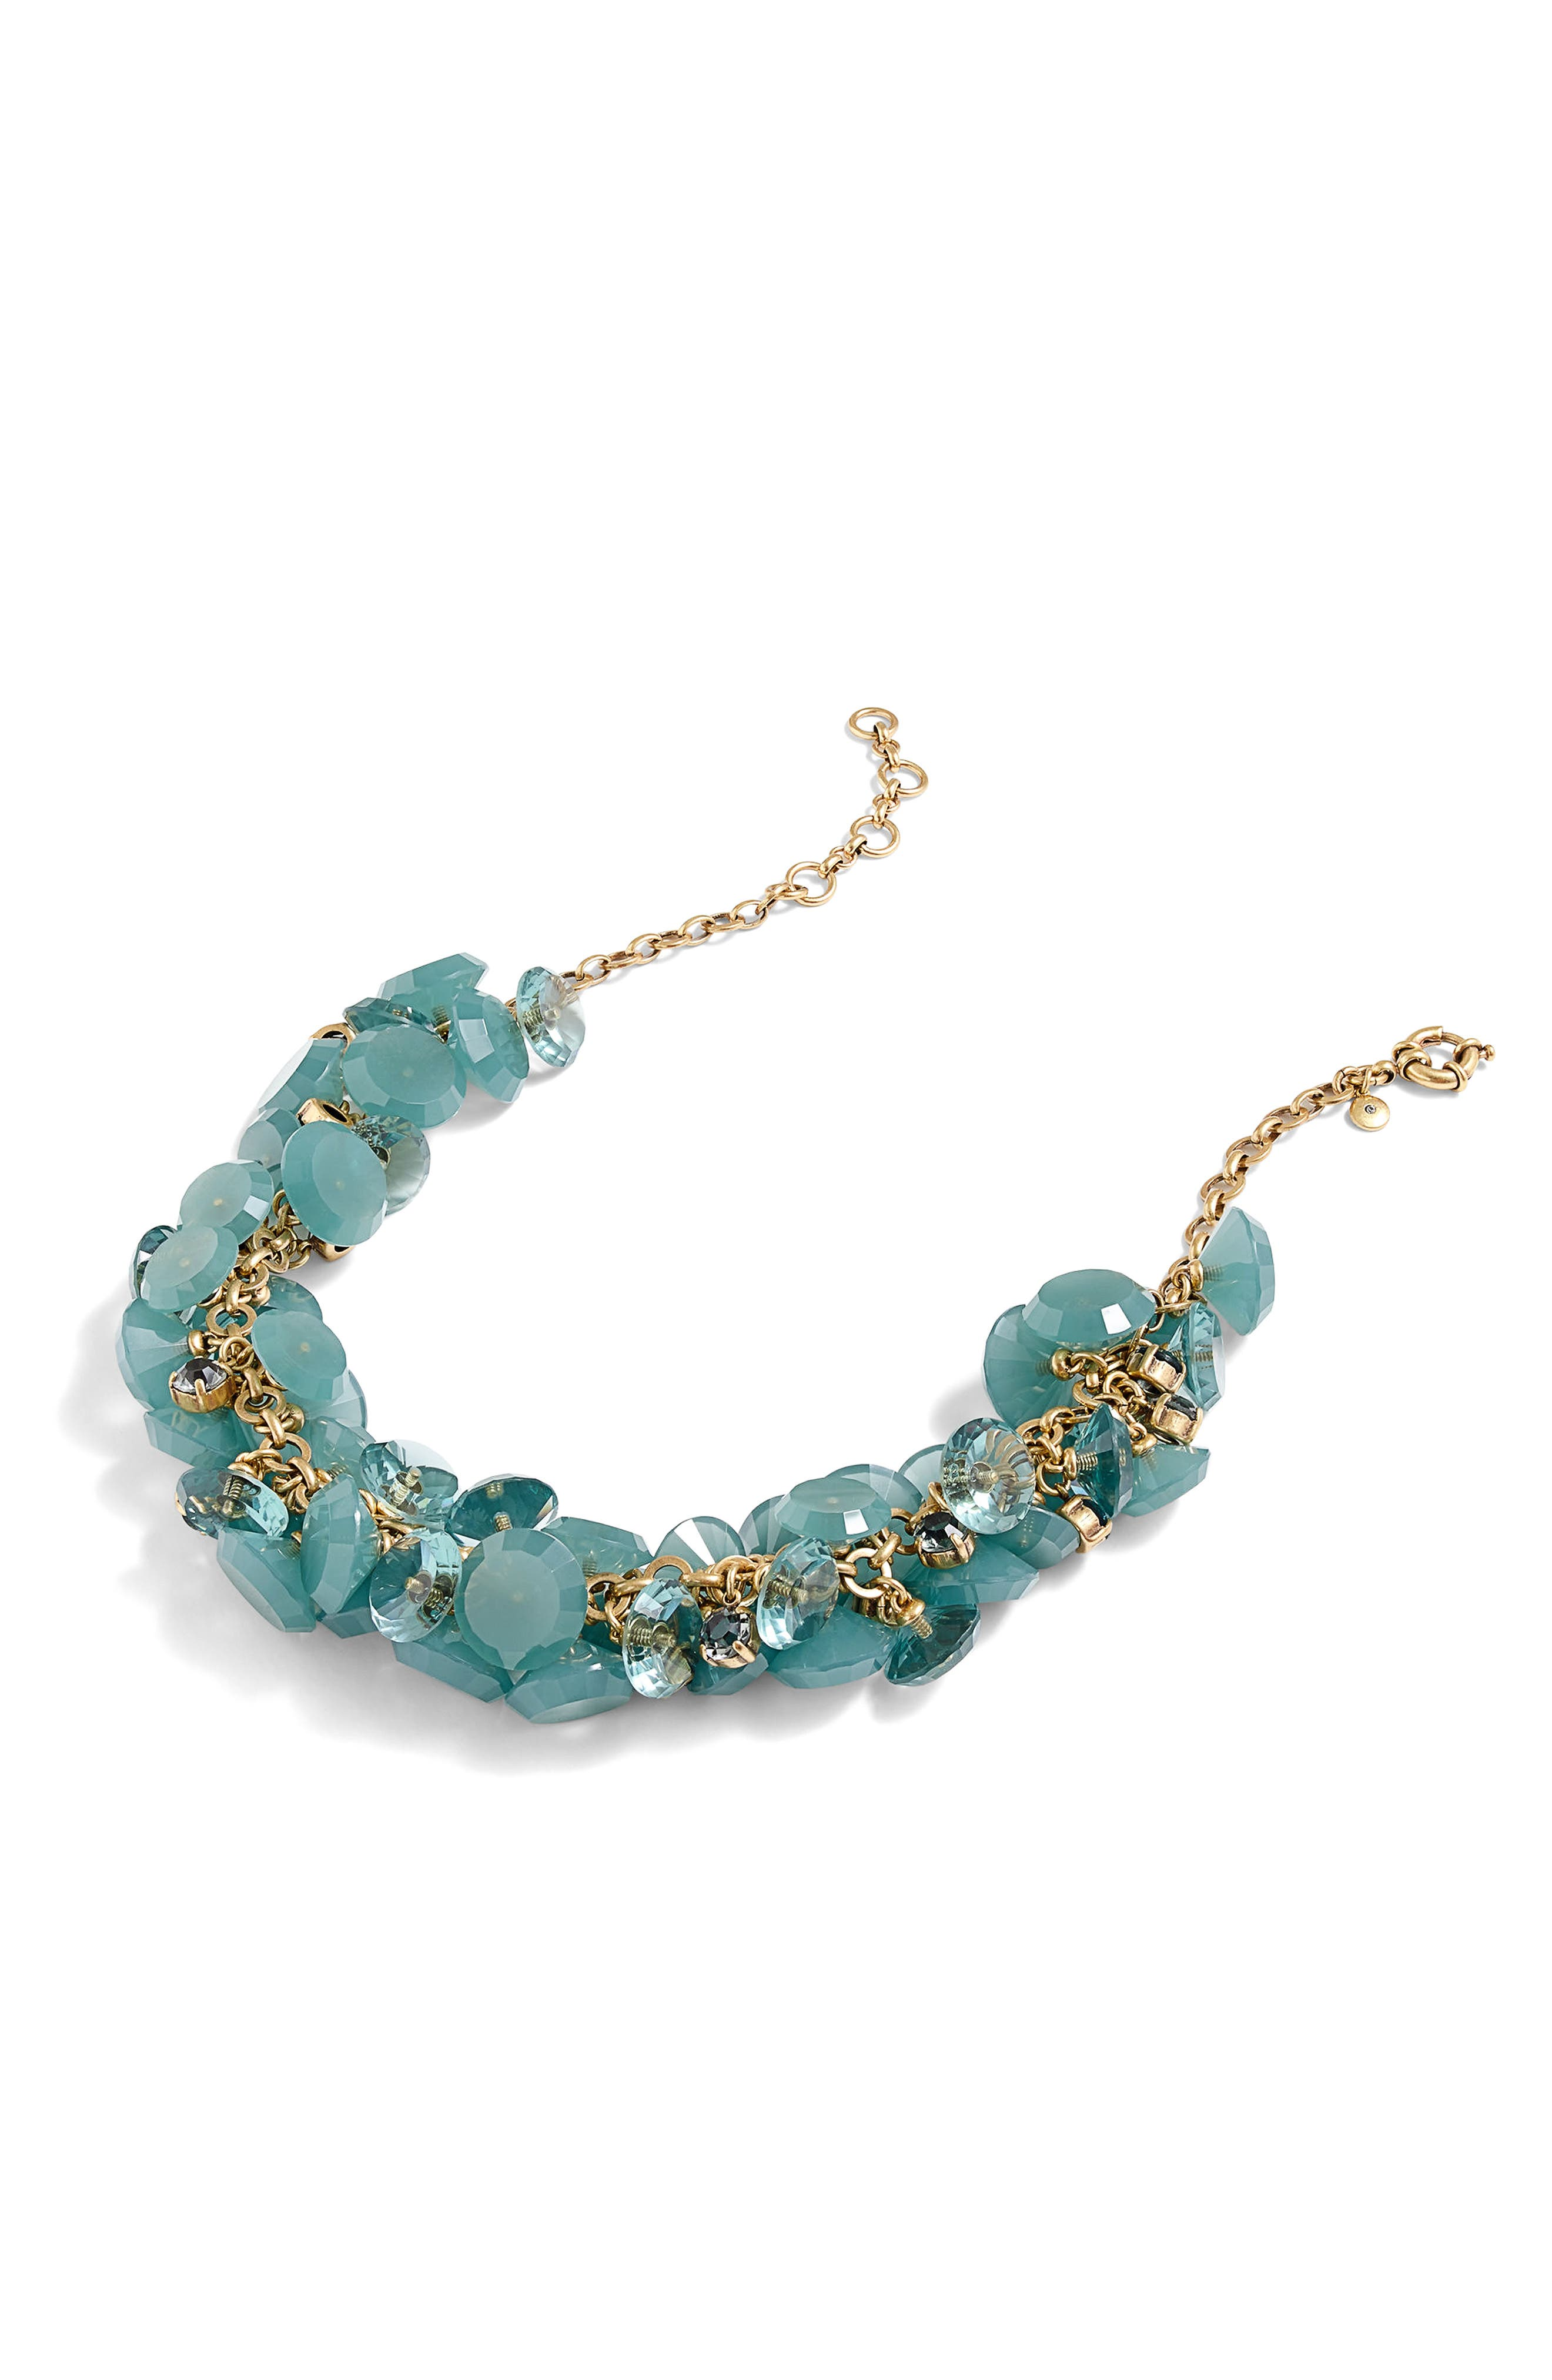 Alternate Image 1 Selected - J.Crew Lucite® Gemstone Necklace